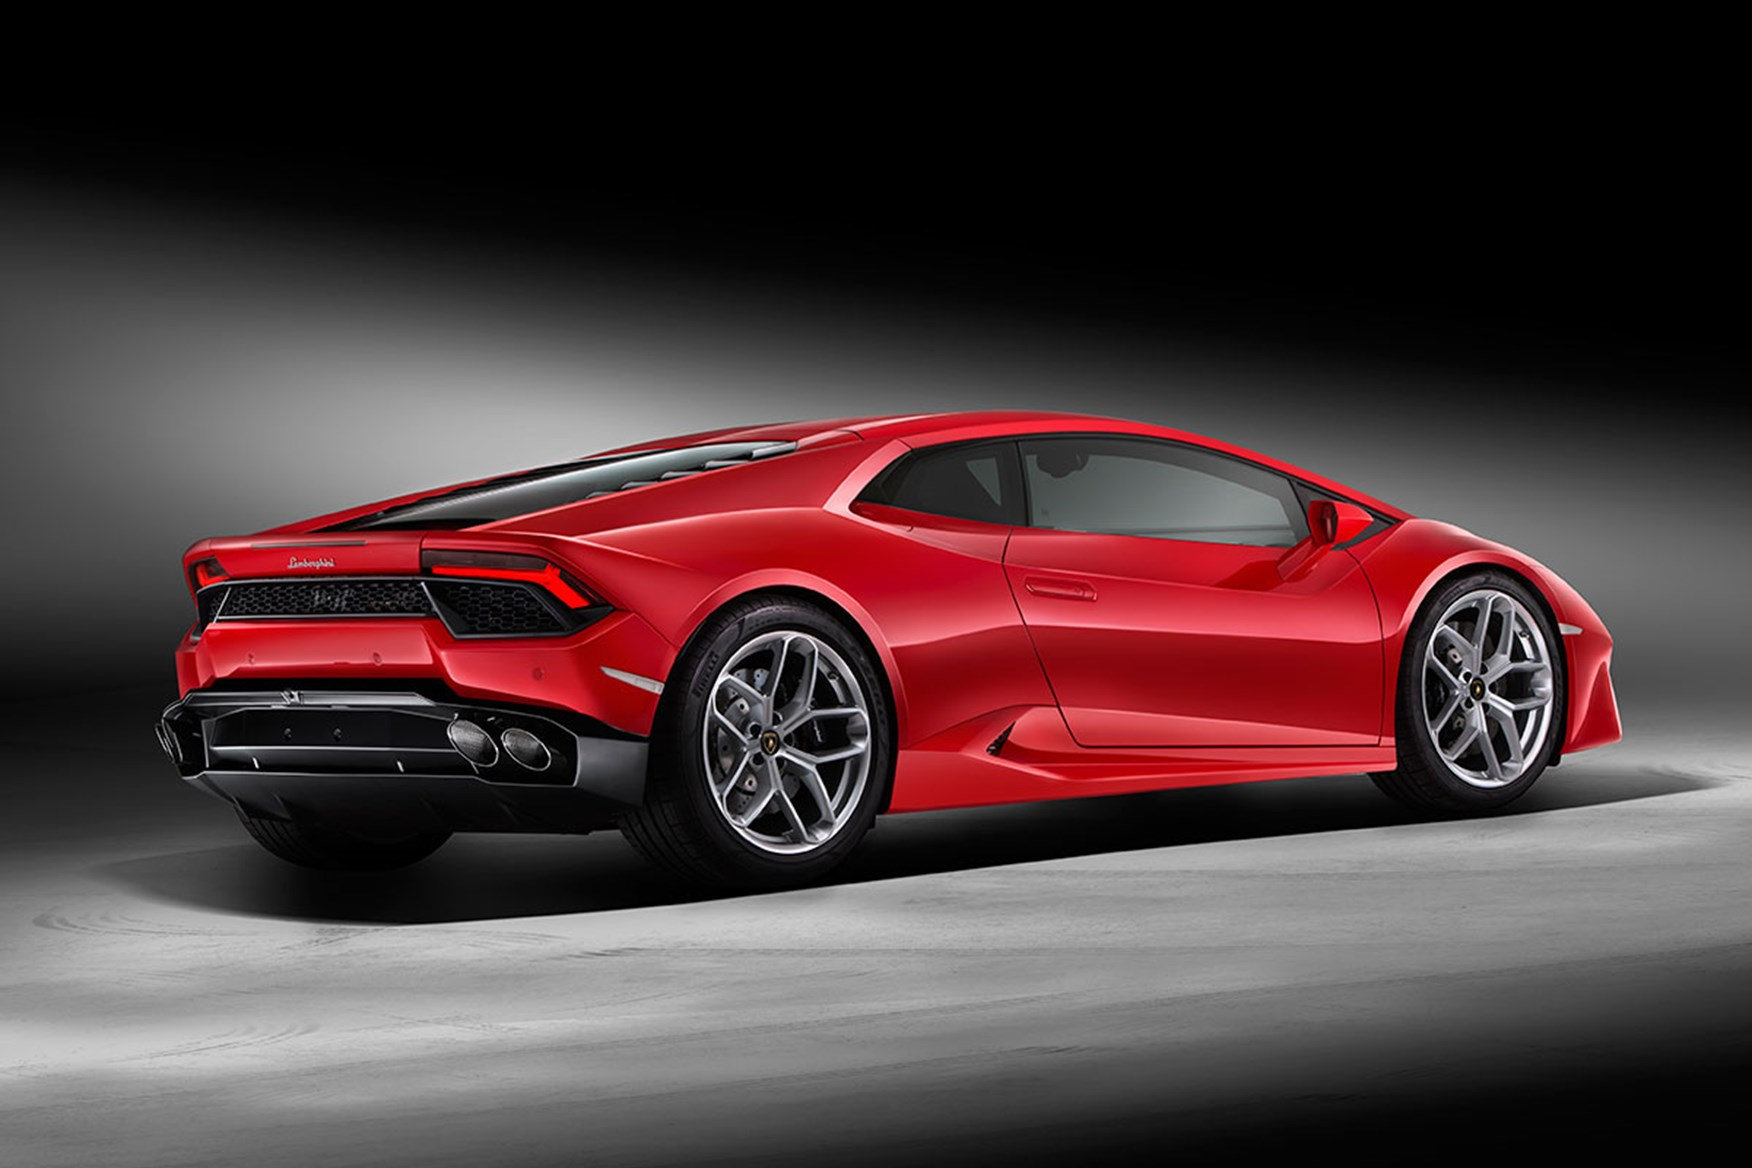 ... Todayu0027s Lambo Huracan: Will It Be Repositioned?